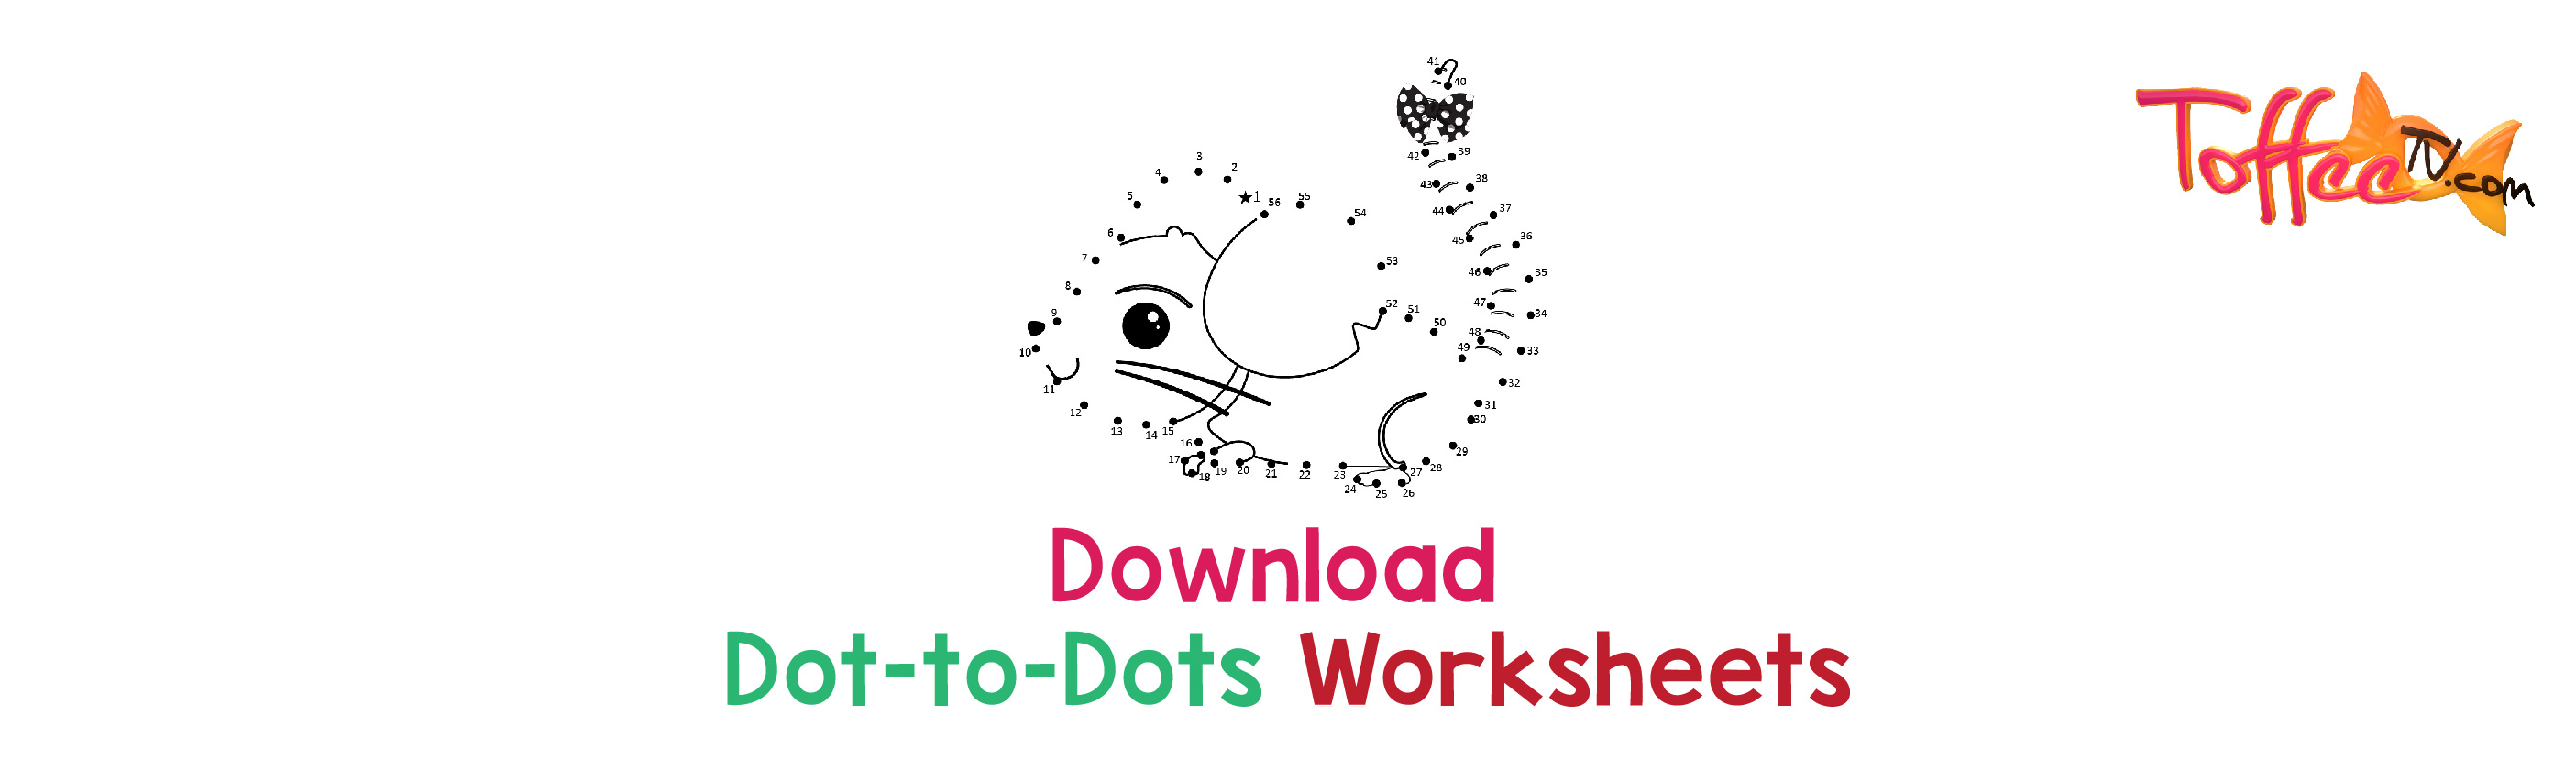 Dot To Dot Worksheet Of Mice From Hickory Dickory Dock